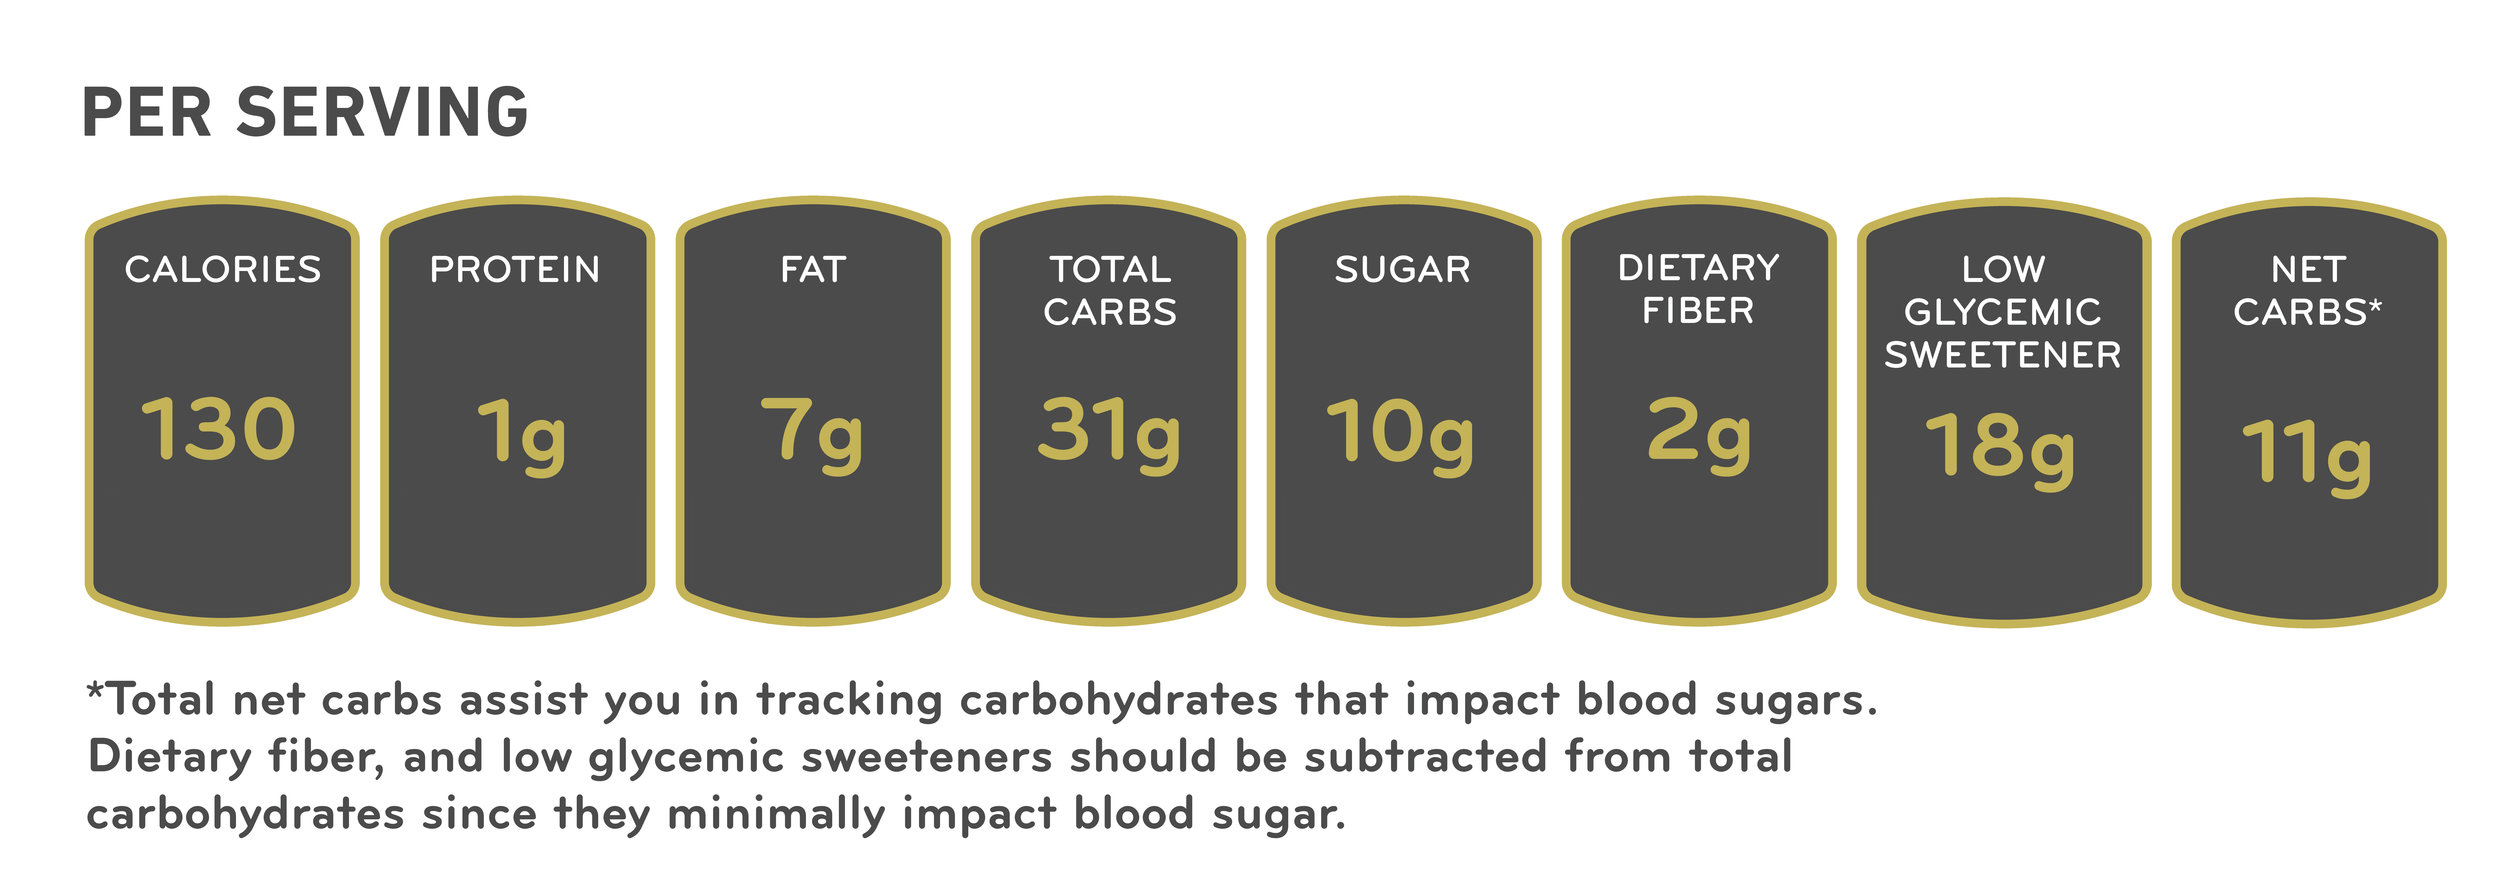 LOW CARB CARAMELIZED PEACHES NUTRITION FACTS.jpg